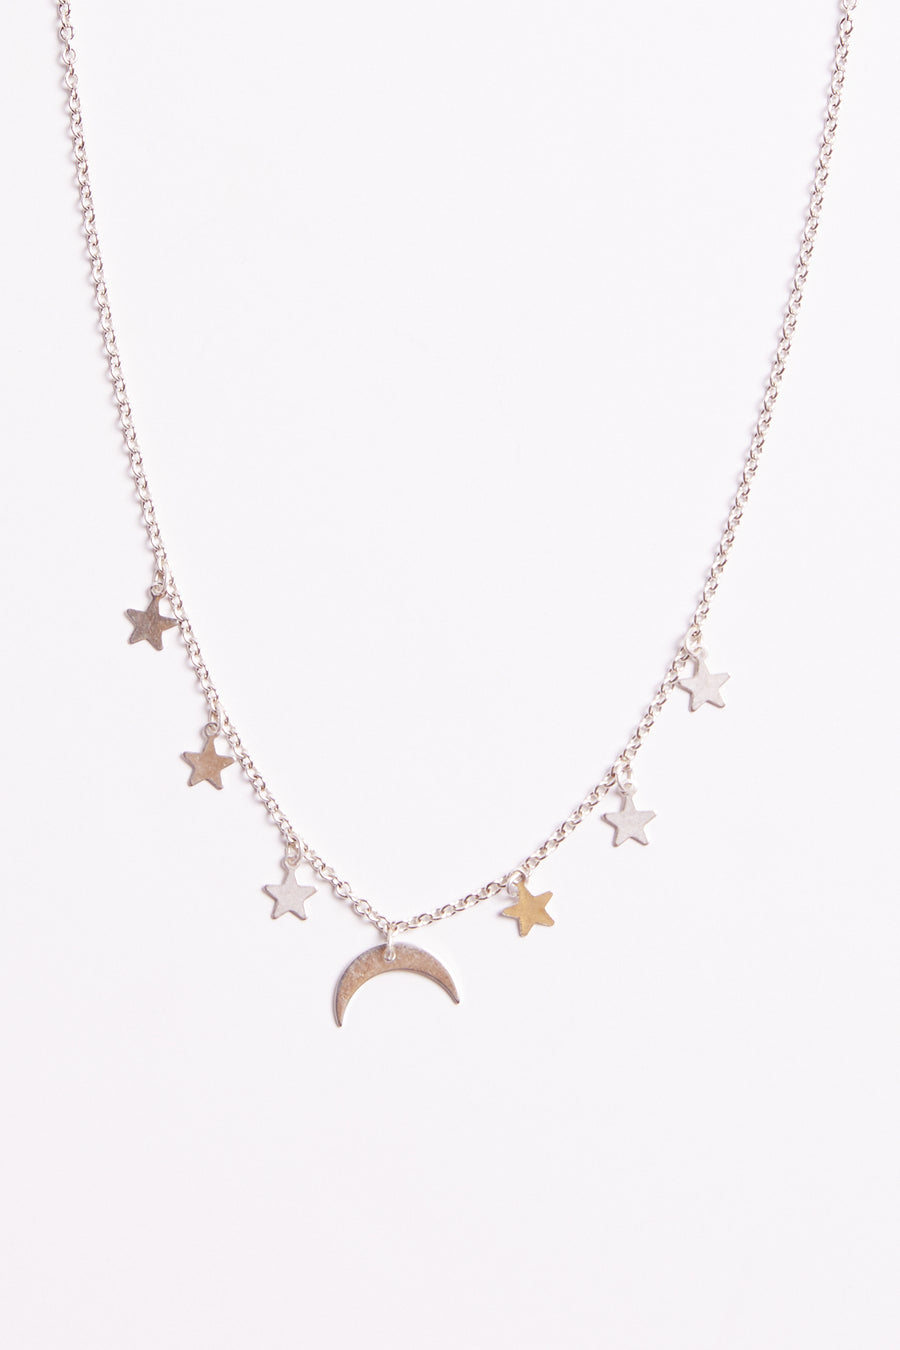 Under The Stars Silver Moon Necklace Close